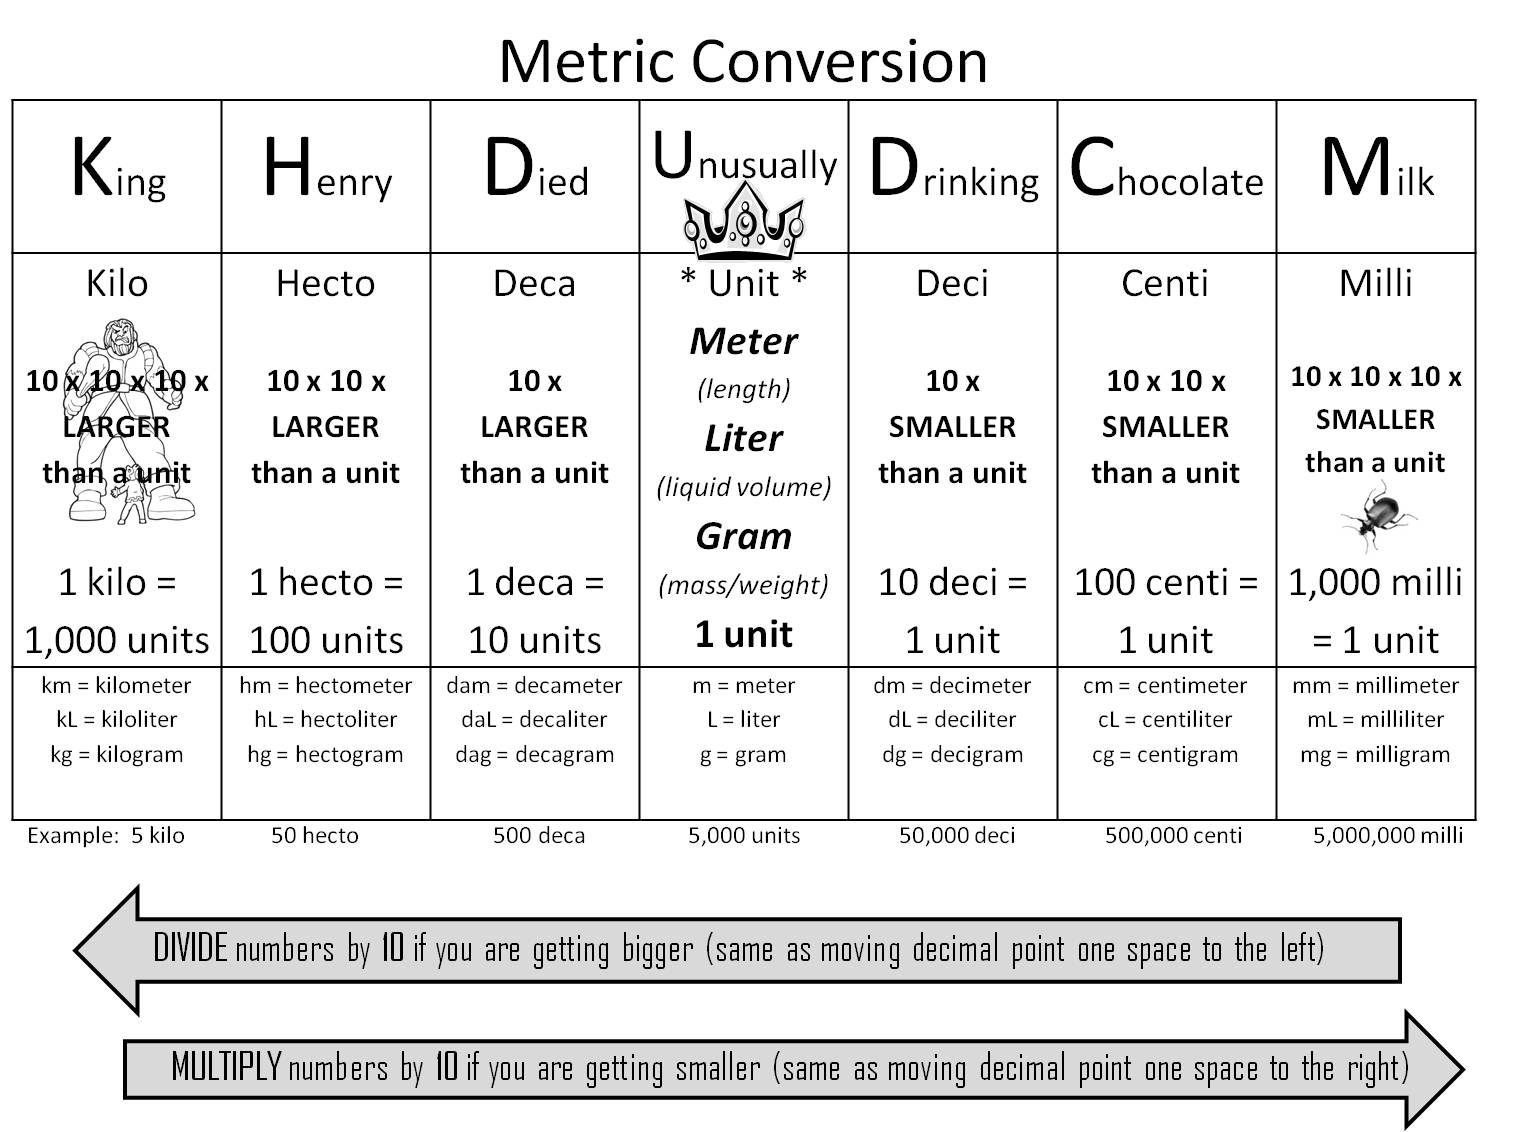 metric conversion diagram coleman thermostat wiring strong armor math trick